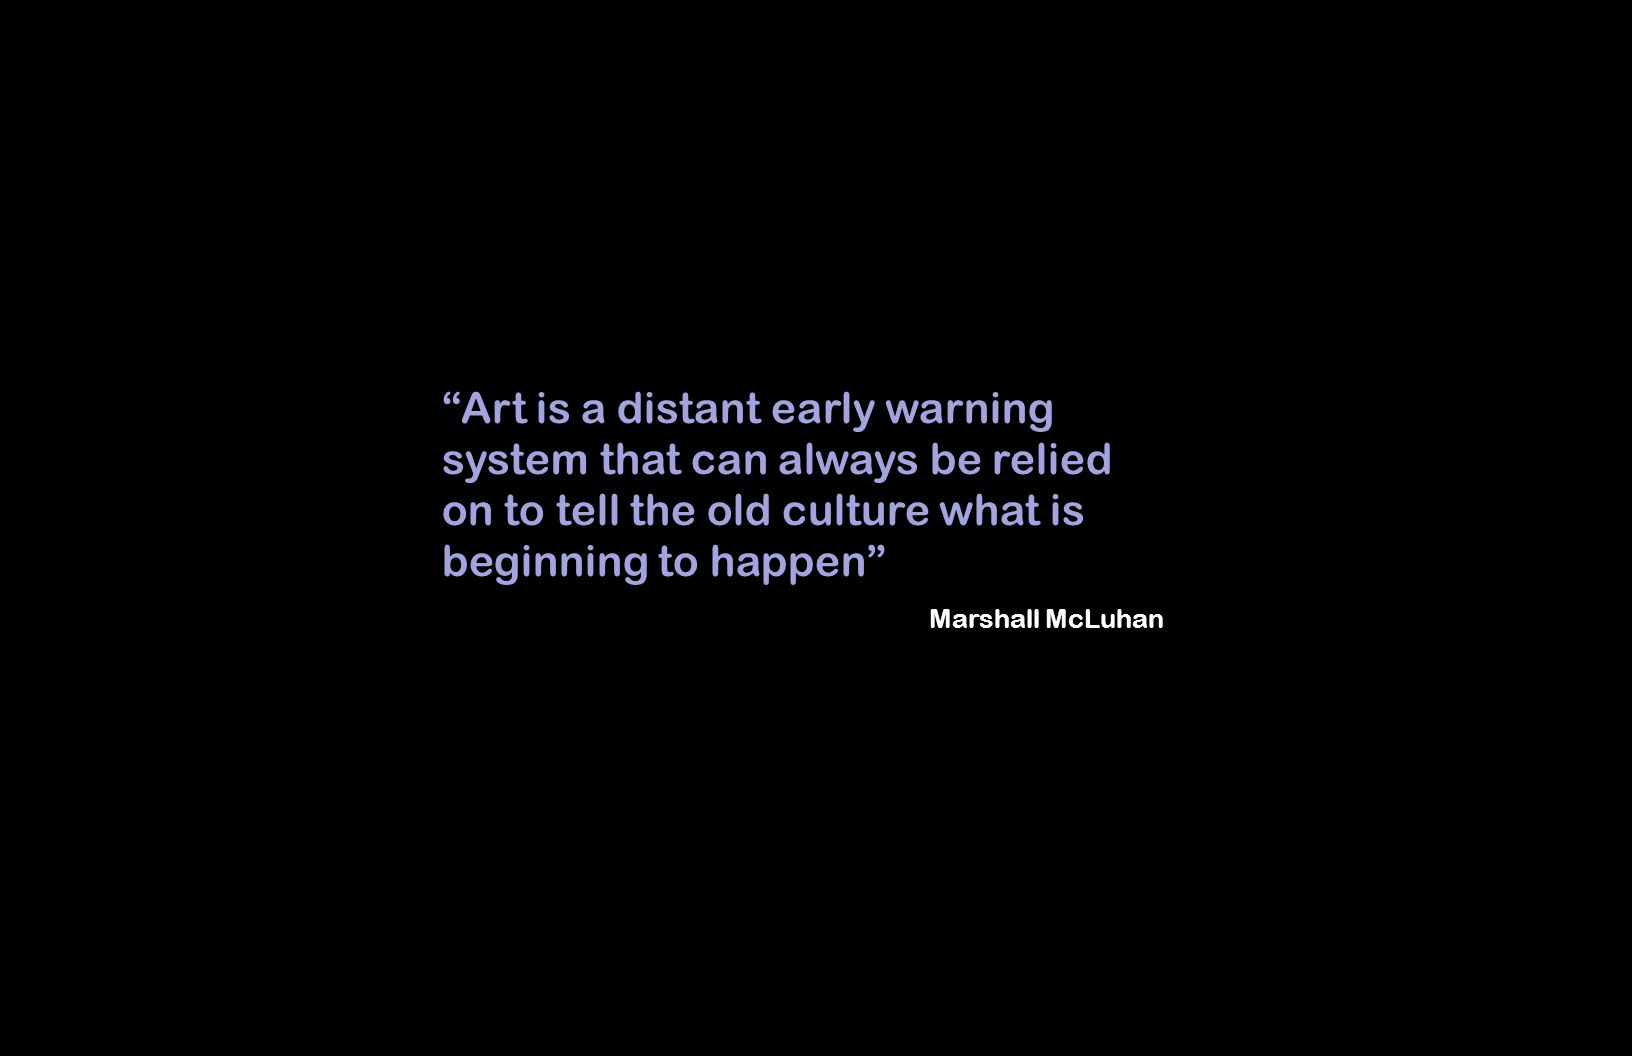 Art is a distant early warning system that can always be relied on to tell the old culture what is beginning to happen Marshall McLuhan